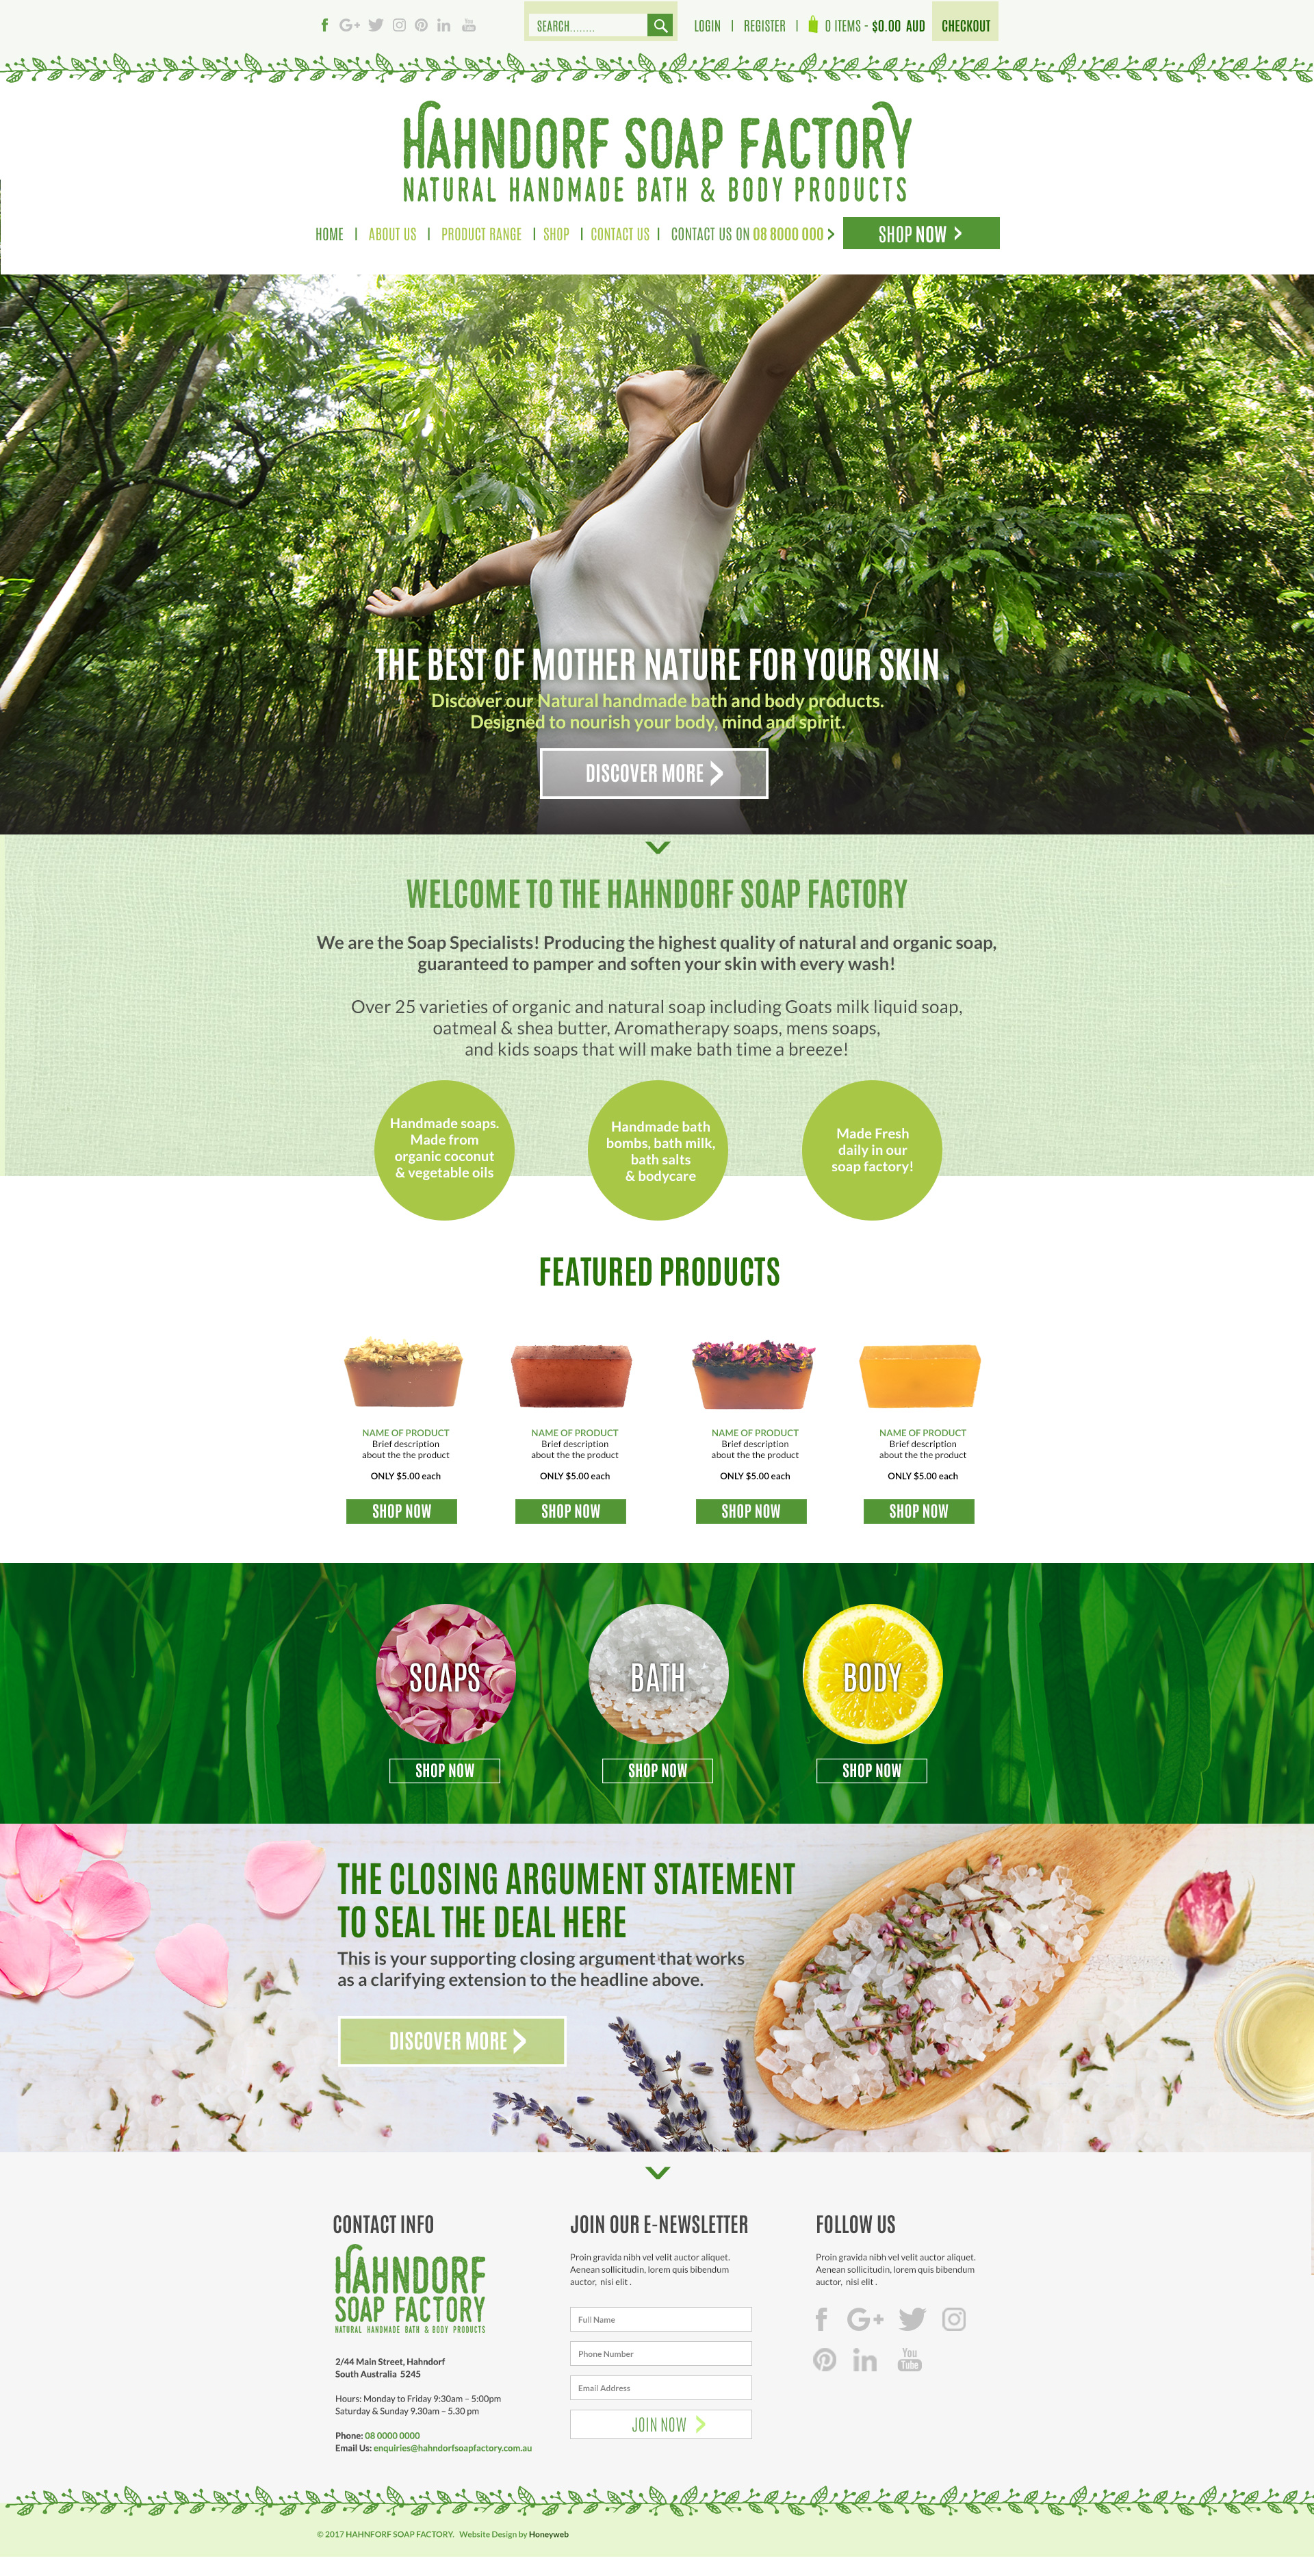 Check out the NEW Hahndorf Soap Factory Ecommerce Website Designed & Constructed by Honeyweb Online Marketing Solutions